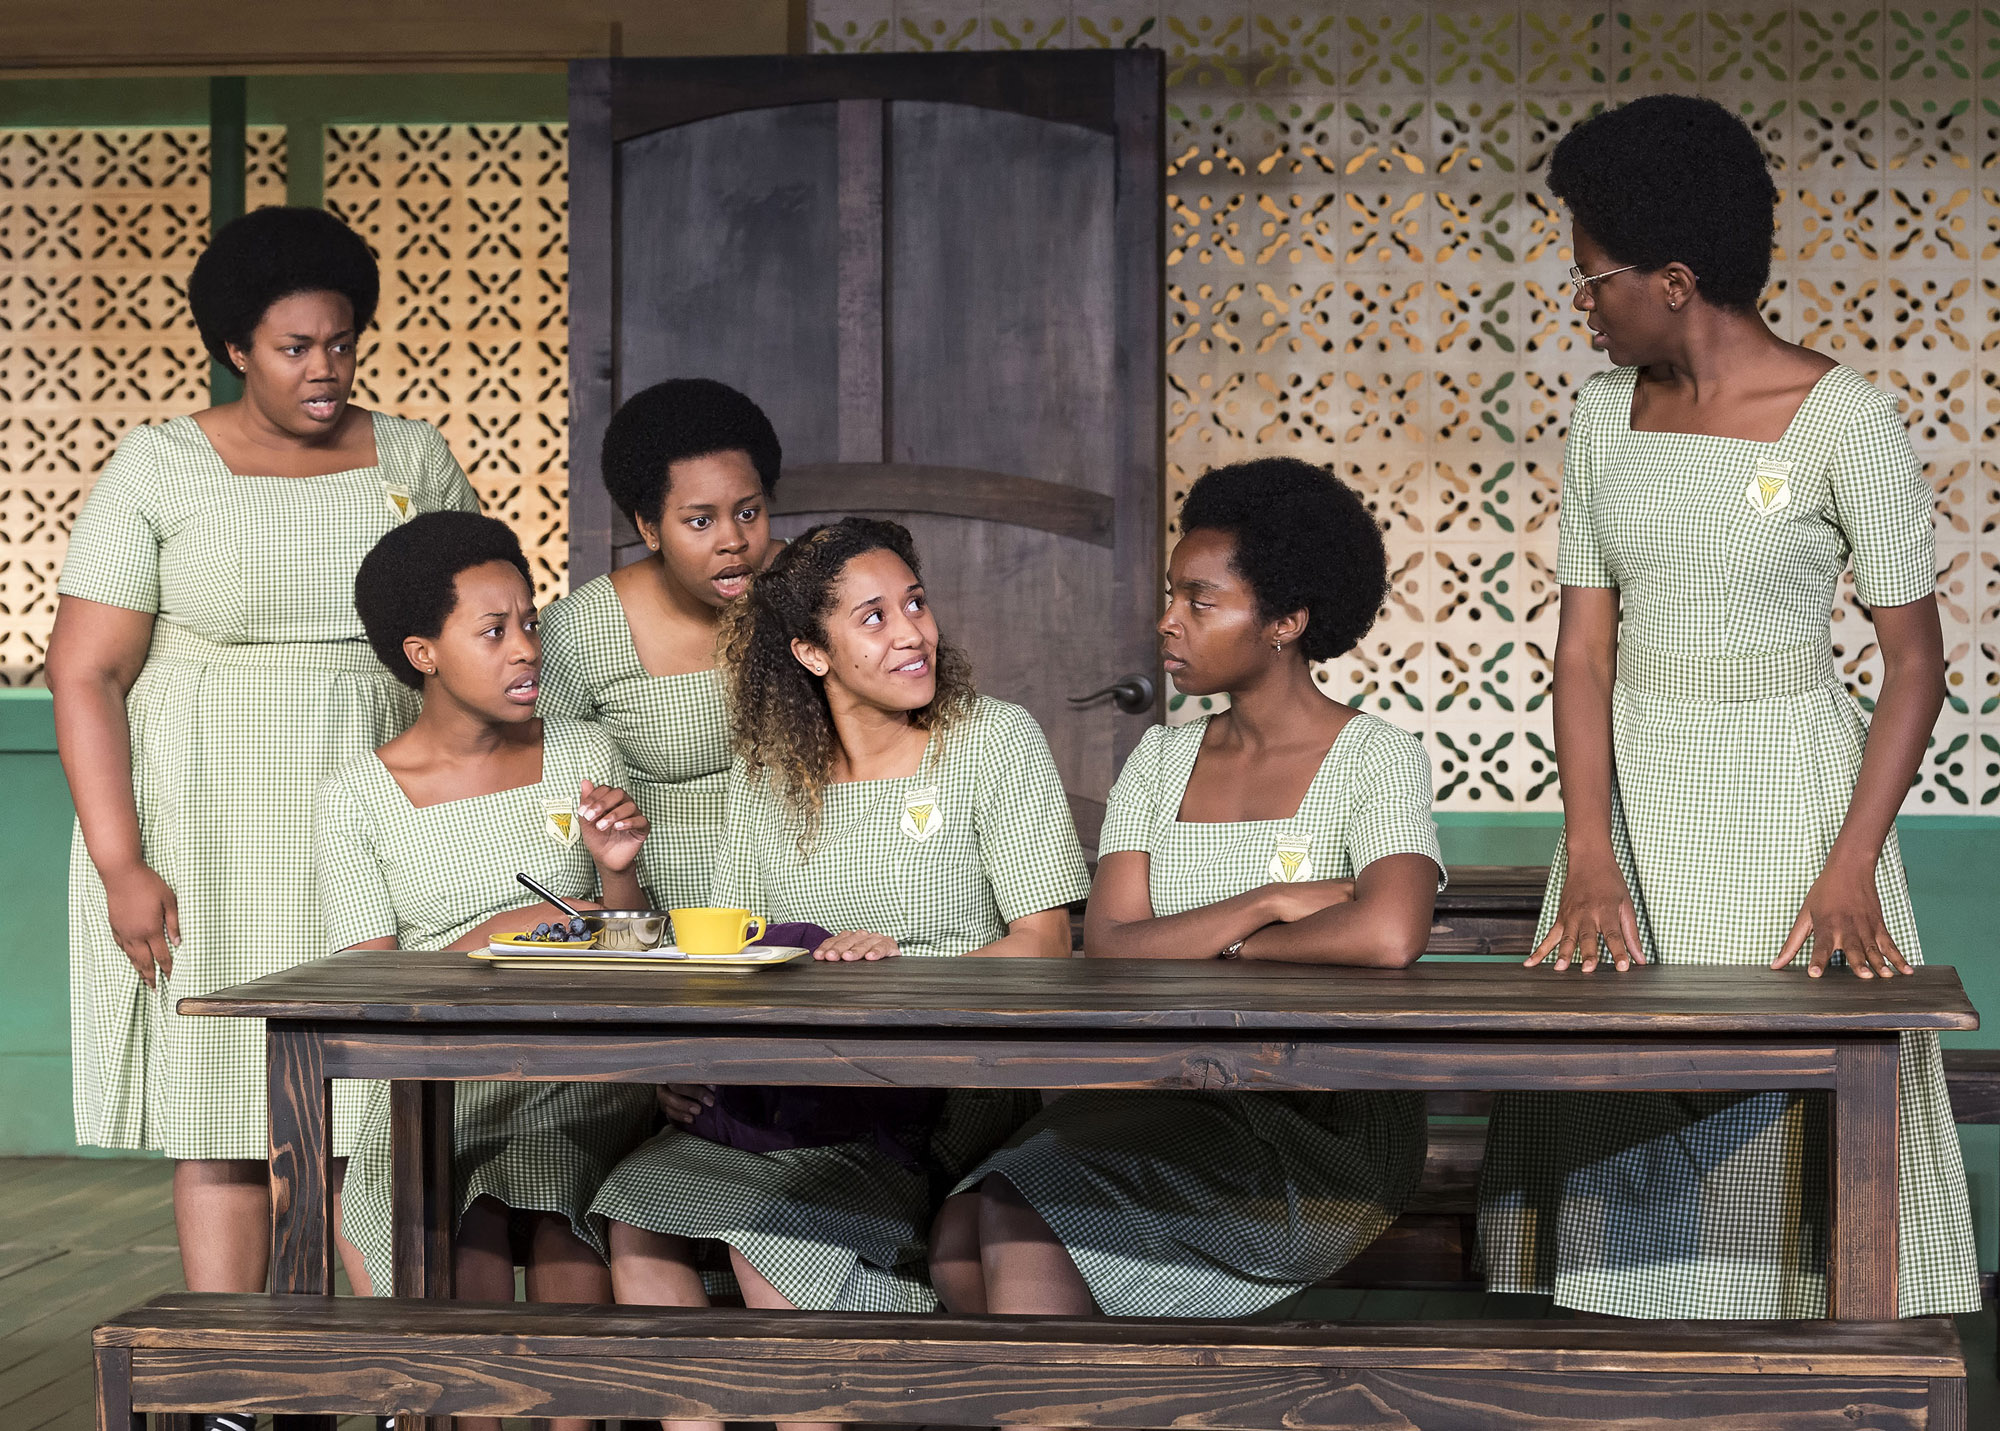 WEB-083.L-R-Abena-Mensah-Bonsu-Mirirai-Sithole-Paige-Gilbert-Joanna-A.-Jones-MaameYaa-Boafo-and-Latoya-Edwards-in-School-Girls-Or-the-African-Mean-Girls-Play-photo-by-Craig-Schwartz.jpg